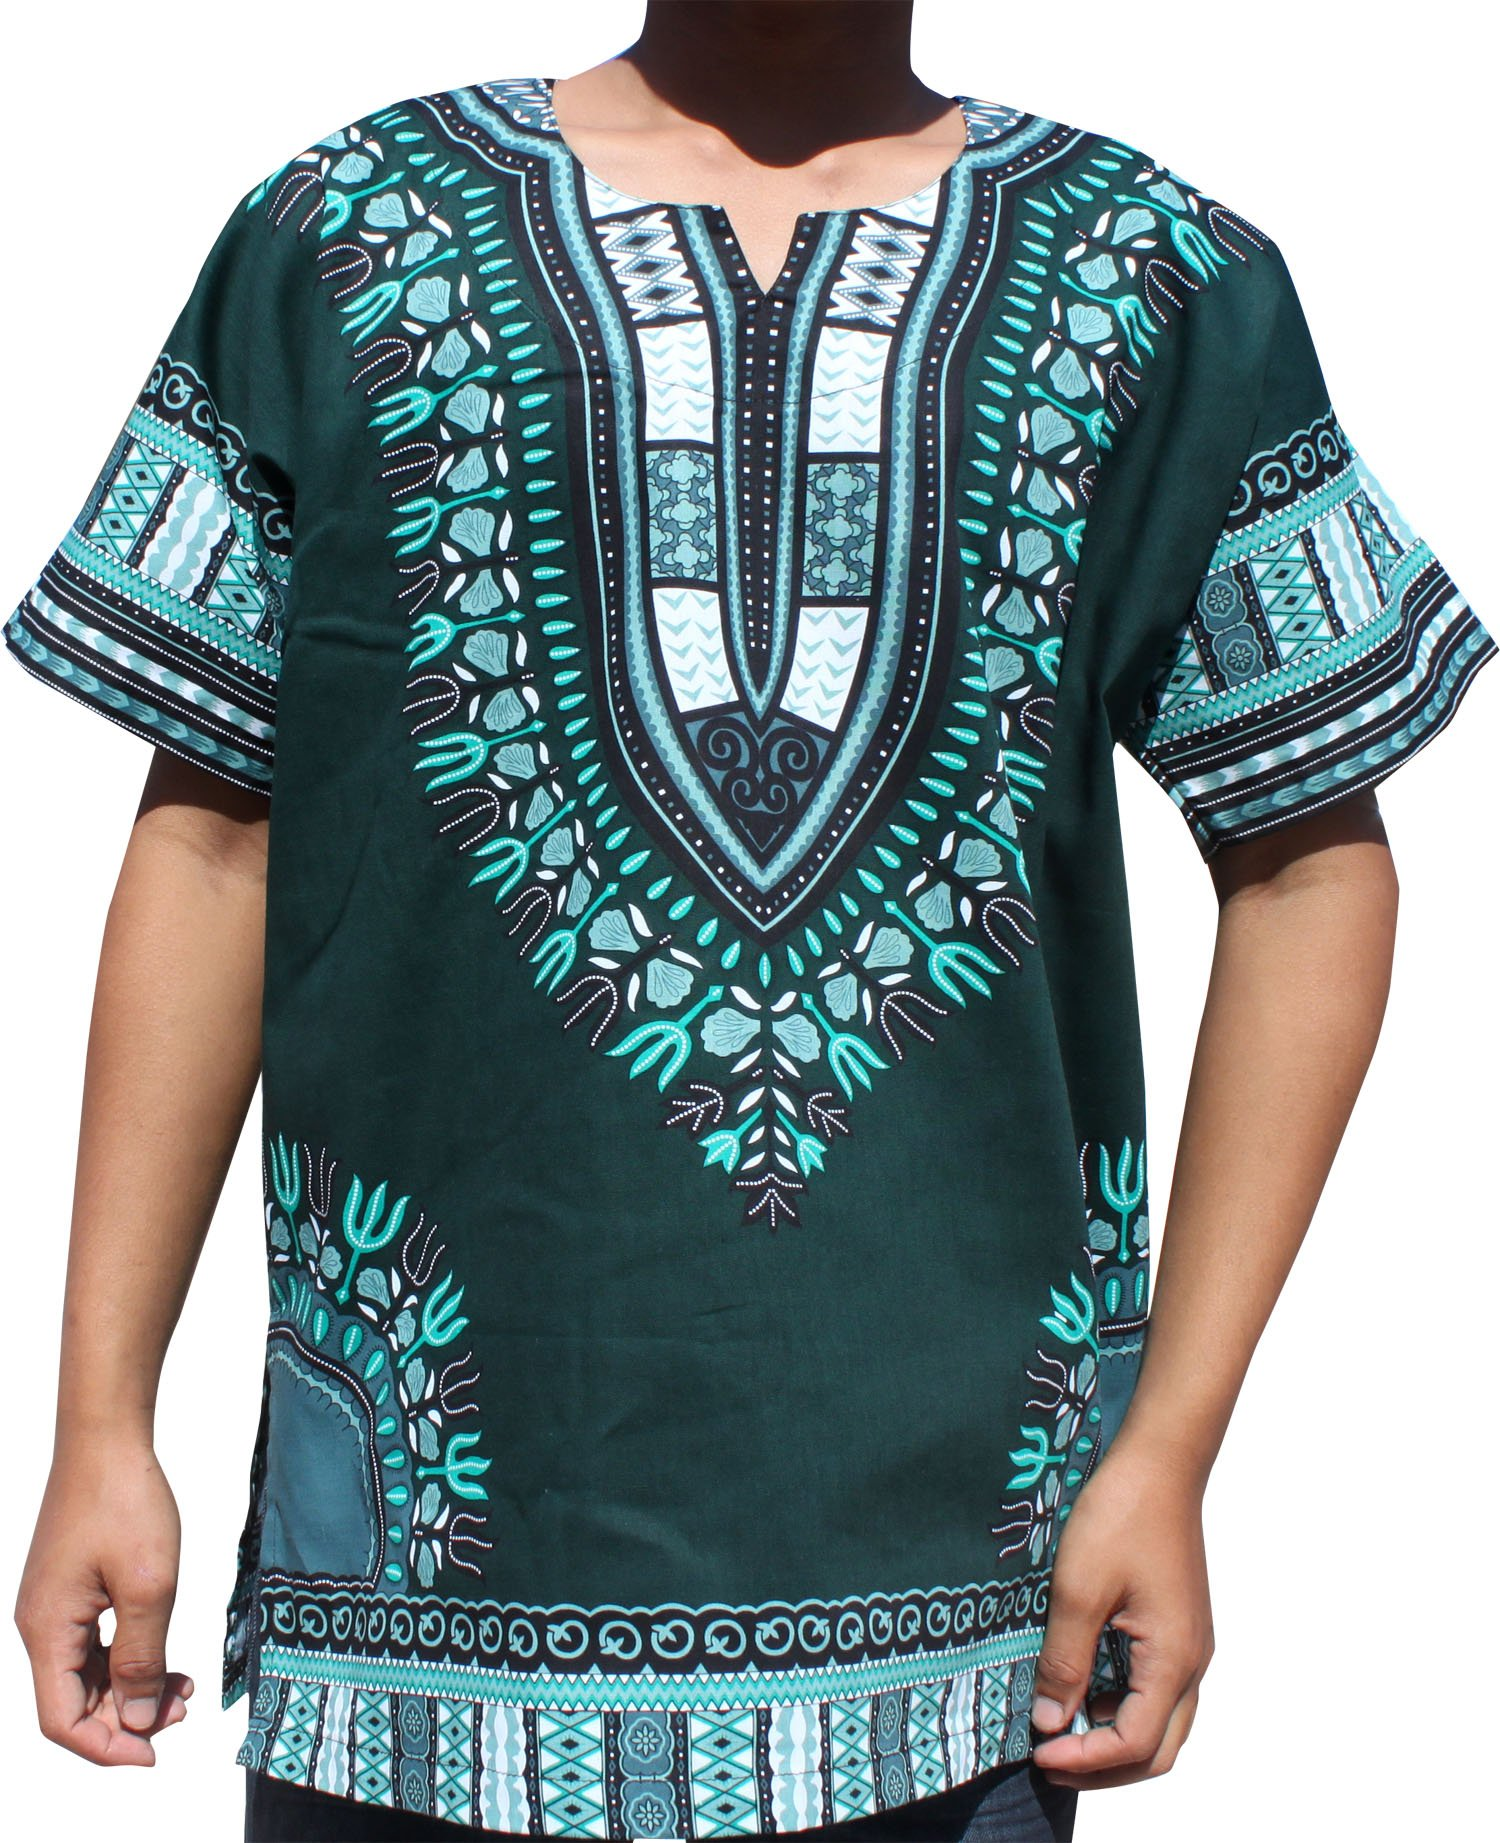 RaanPahMuang Brand Unisex Bright Colour Cotton Africa Dashiki Shirt Plain Front, Large, Phthalo Green